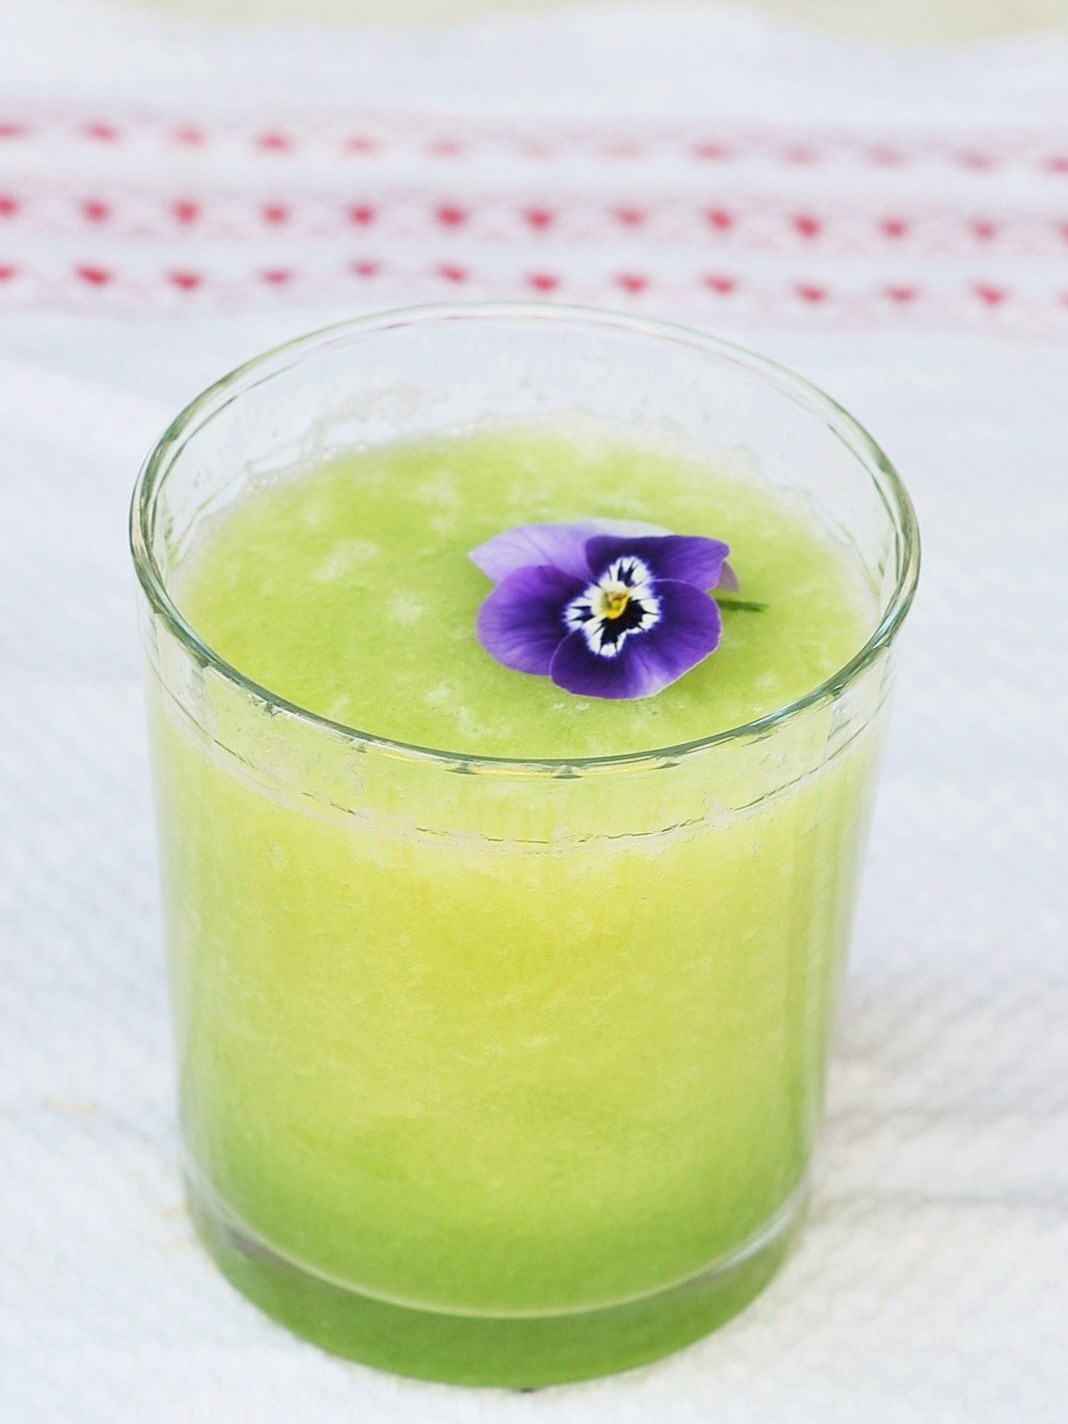 Honeydew-melon-juice-Kiku-Corner-2